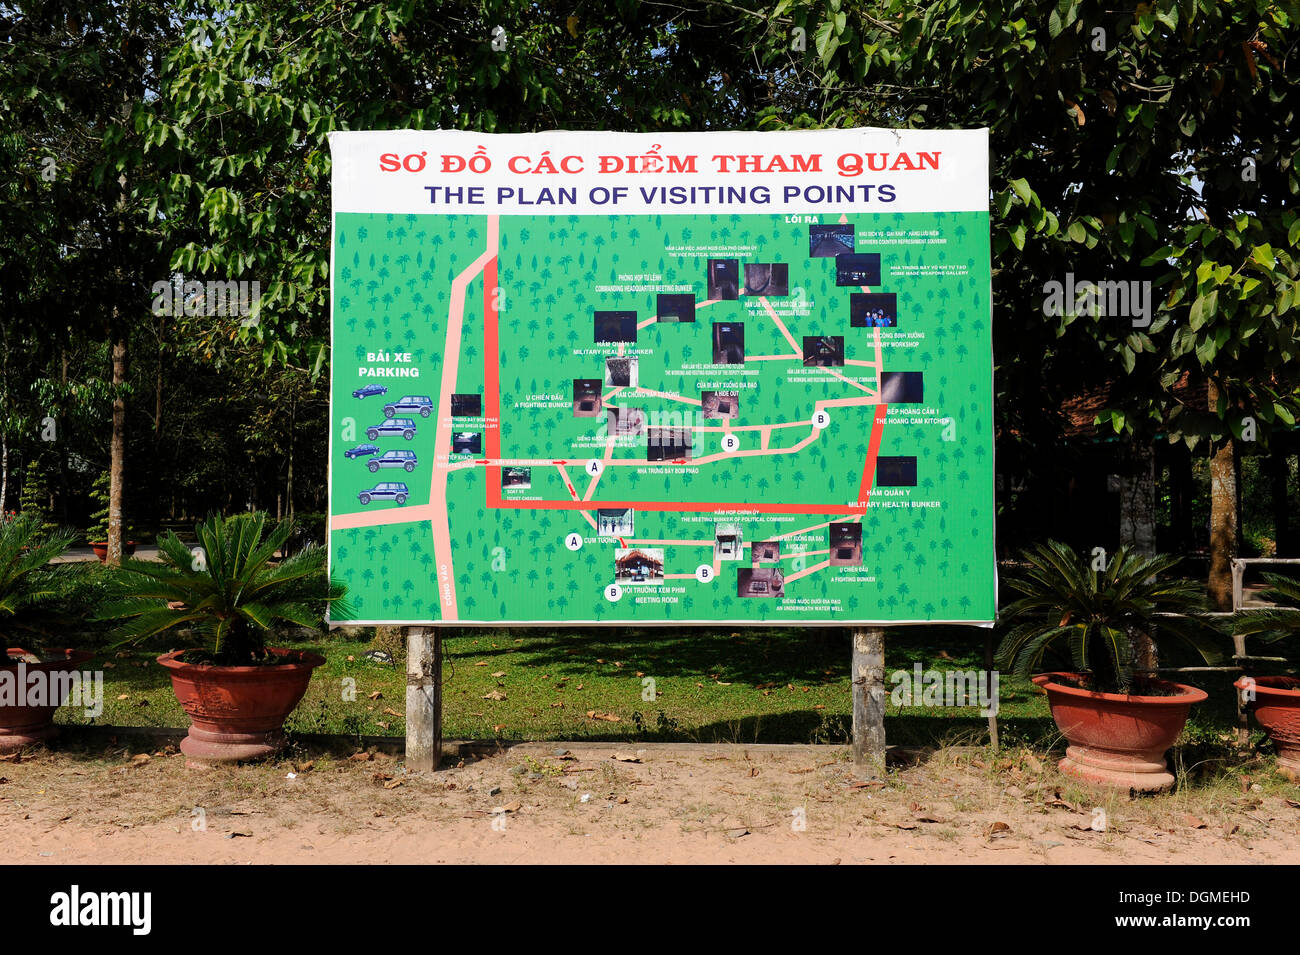 Site map of the points of interest in the open-air war museum in Cu Chi, South Vietnam, Vietnam, Southeast Asia, Asia - Stock Image